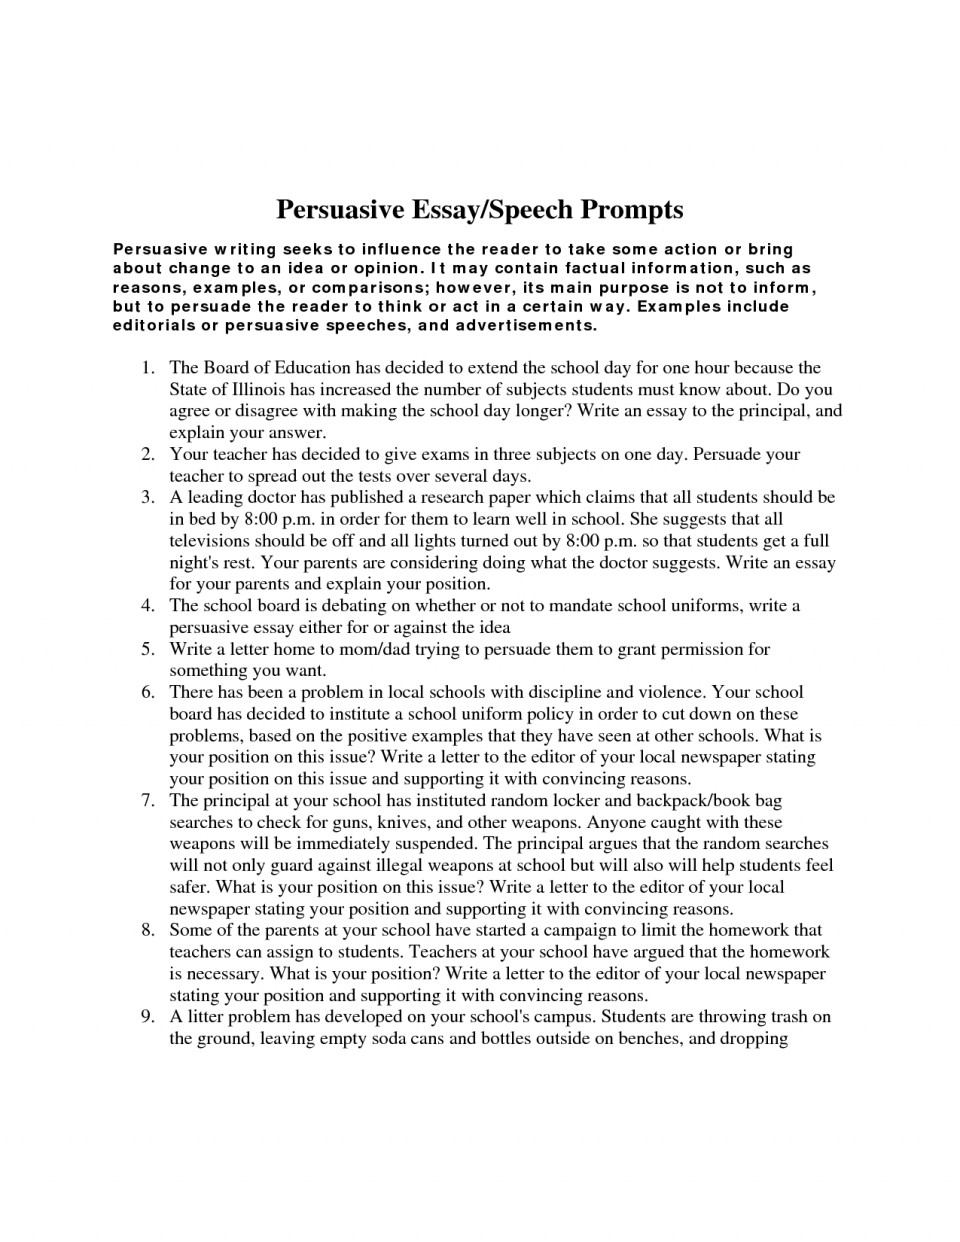 012 Essay Example Persuasive Prompts Informative Remarkable Topics For 4th Grade Expository High School 6th Graders 960